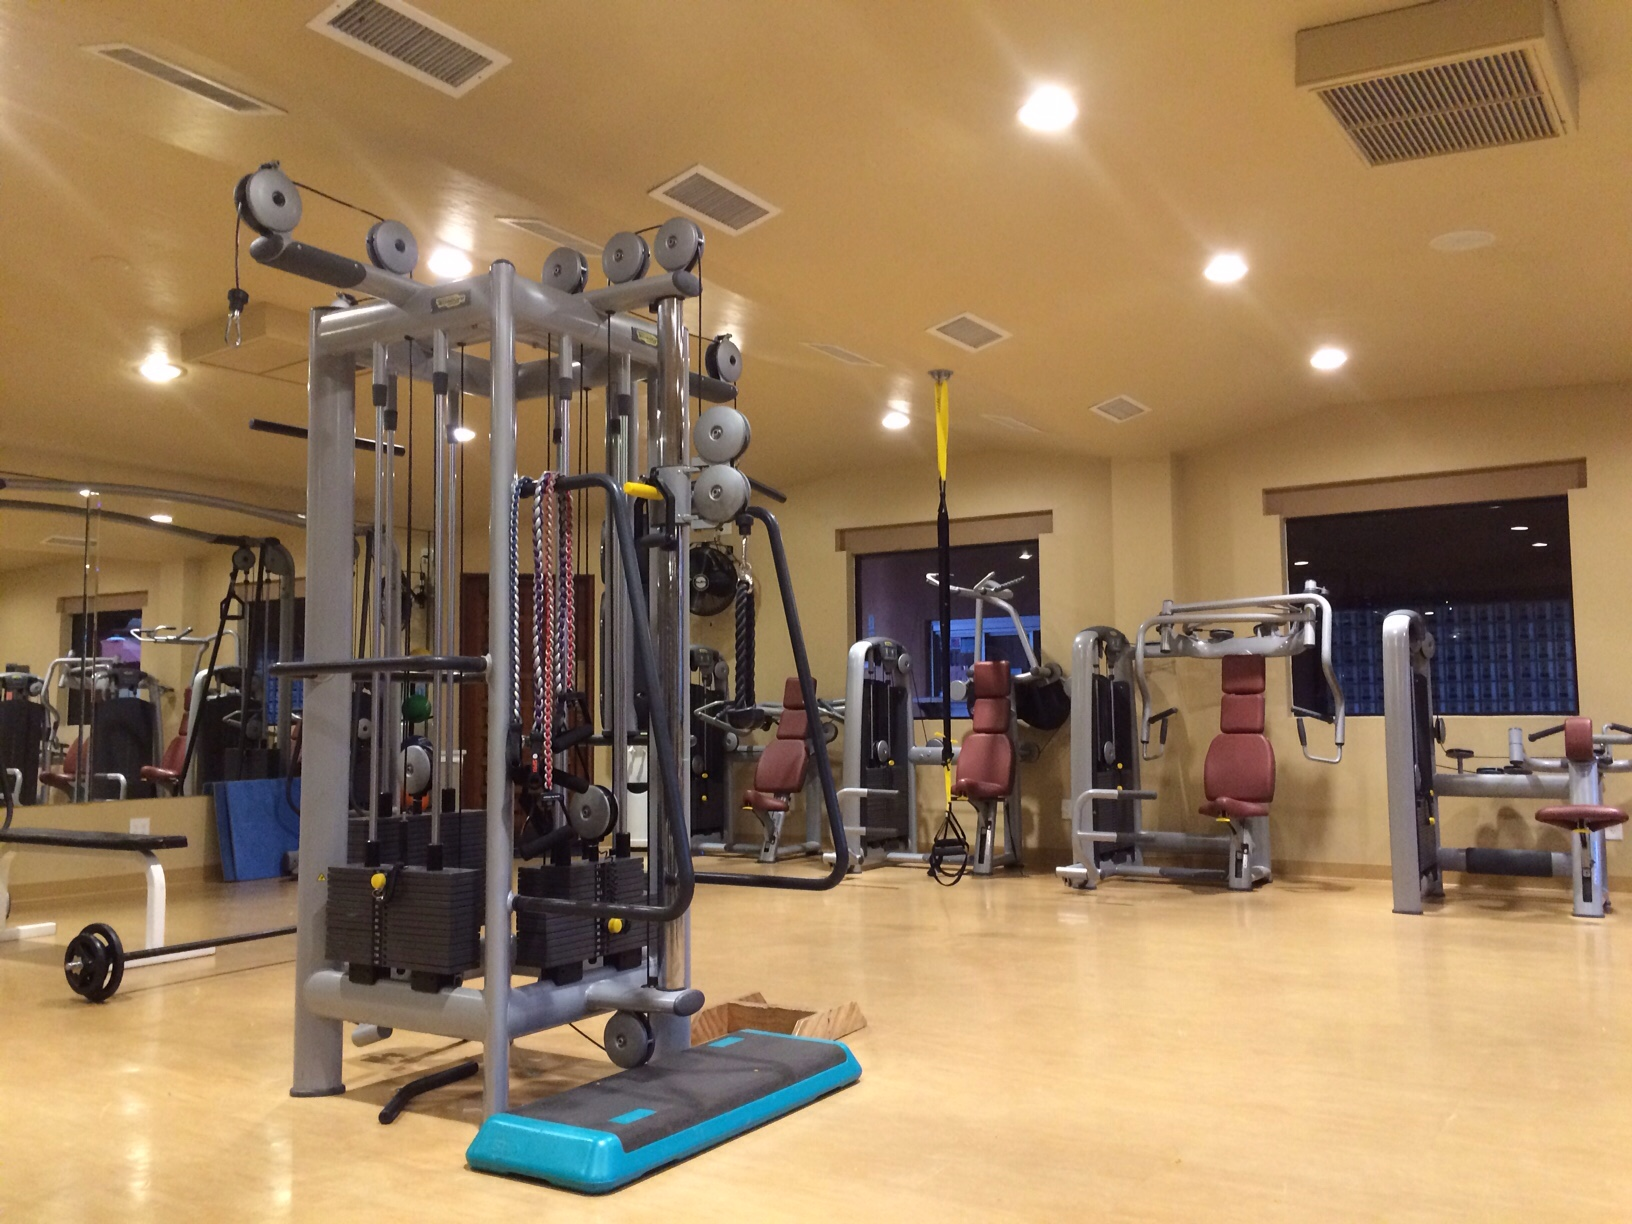 Gym workout at monte vista resort